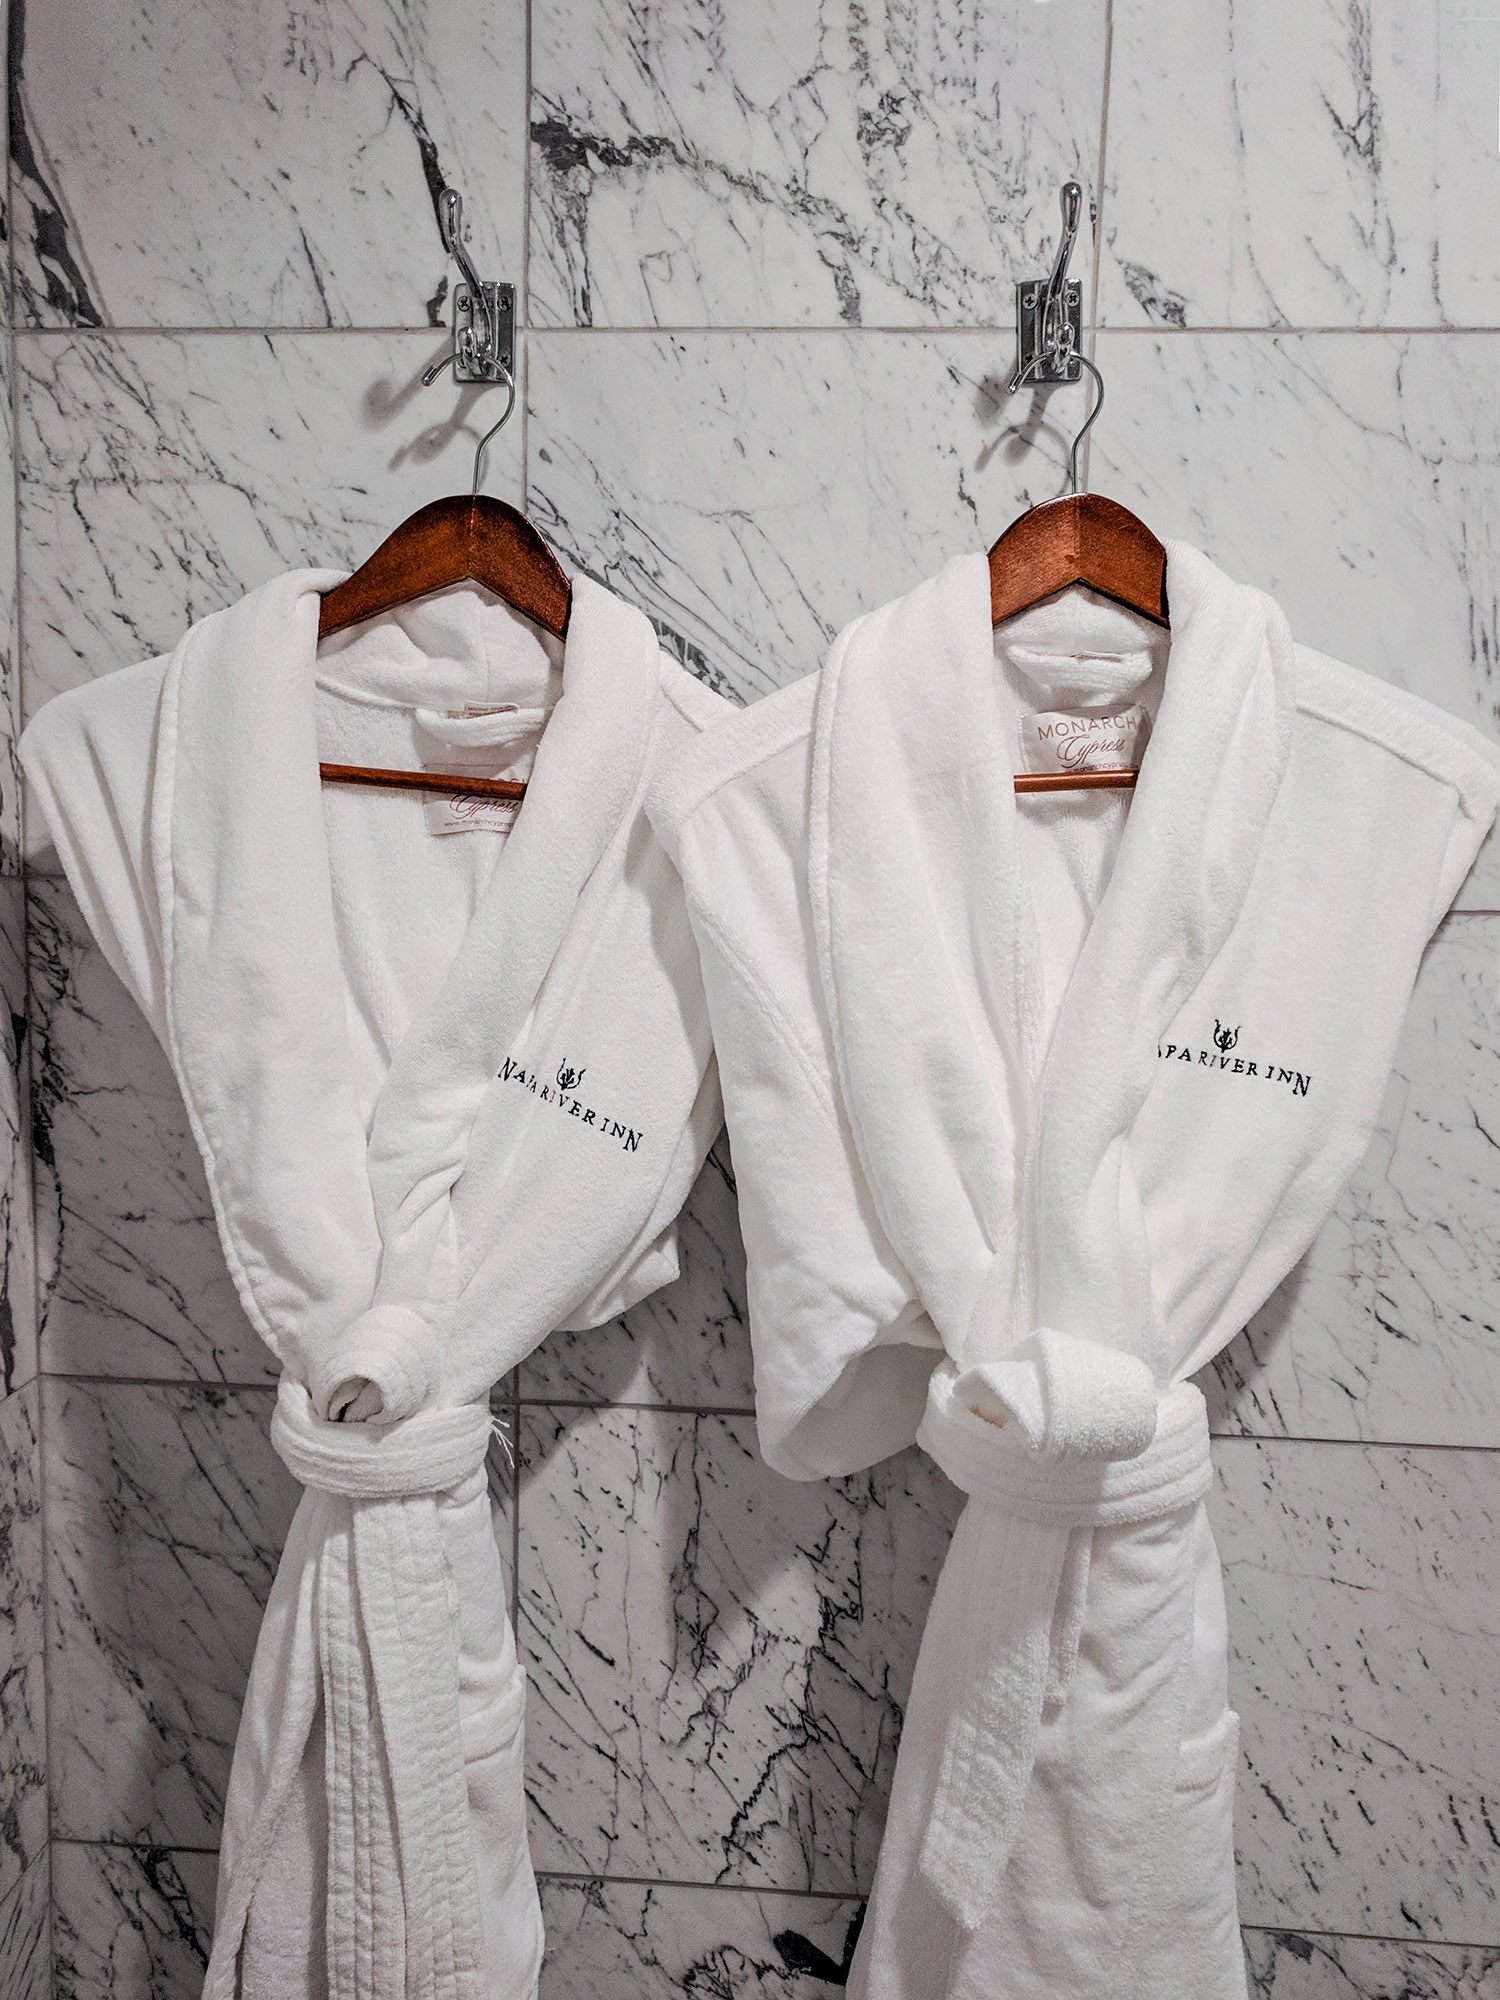 Napa River Inn robes